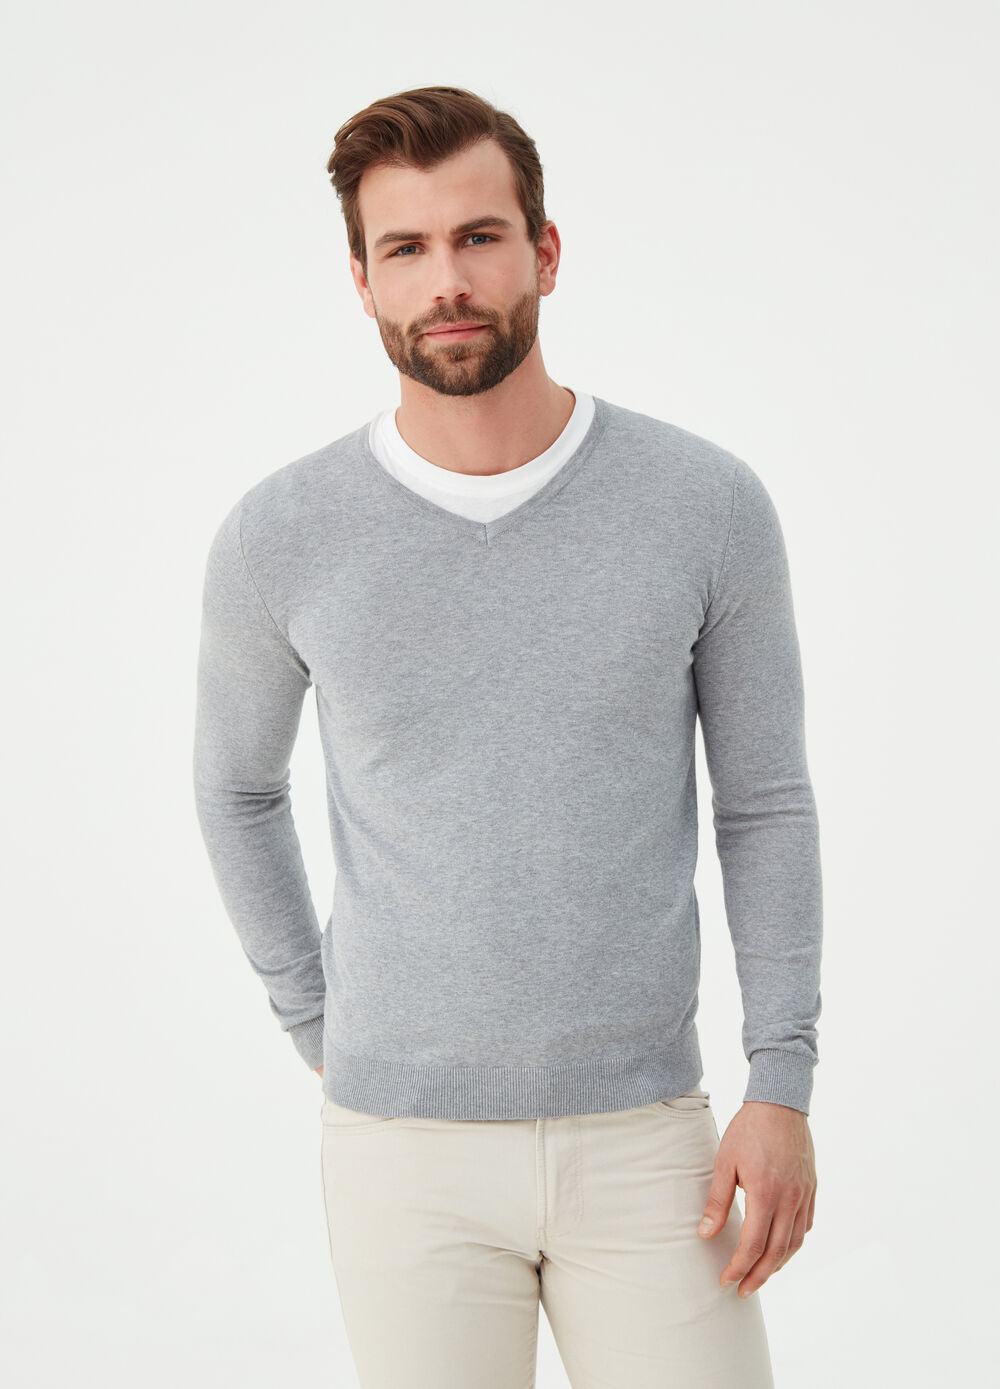 Knit pullover with V-neck and ribbing